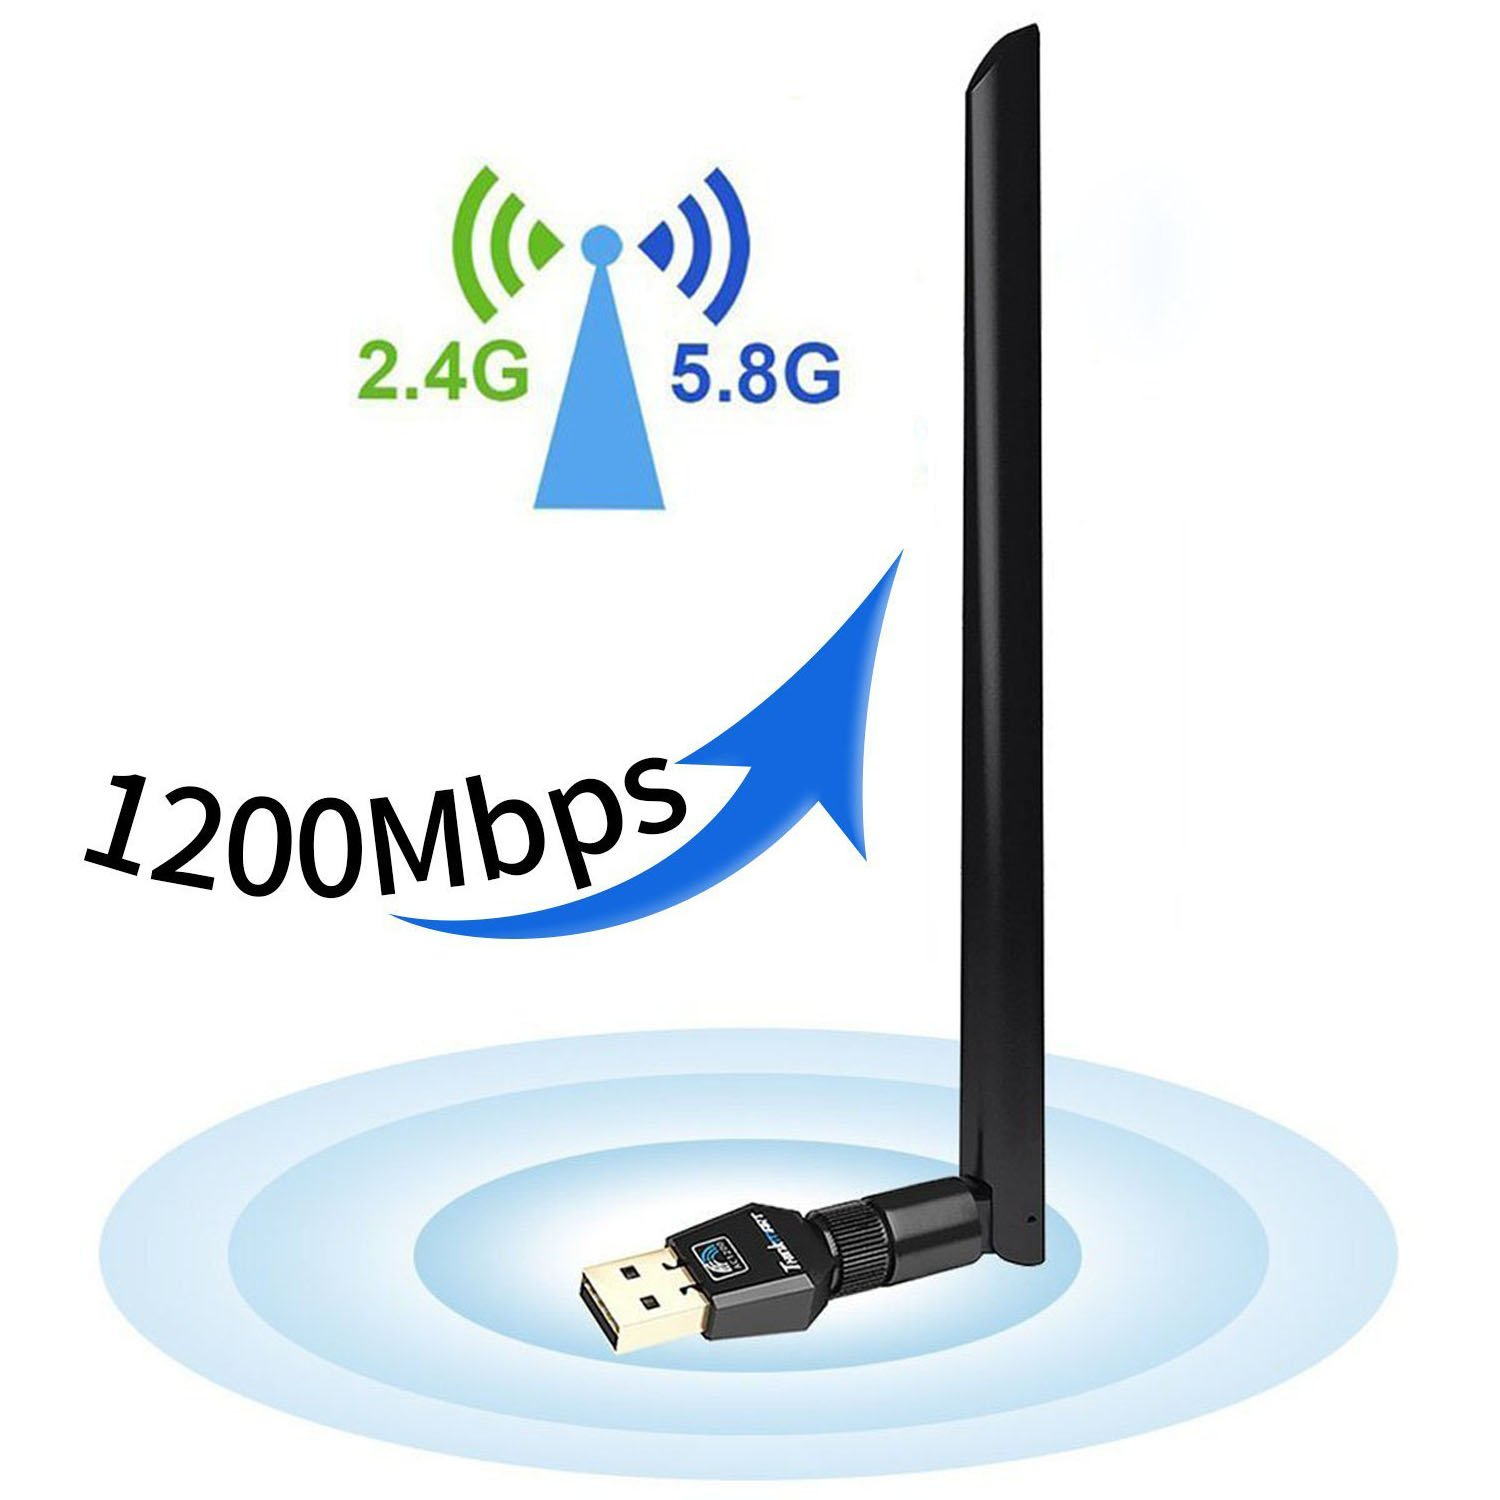 1200Mbps Wireless USB WiFi Adapter,USB WiFi Network Adapter Dual Band USB 3.0 5dBi 2.4G/5.8G Win XP 7/8 / 8.1/10 Mac OS X 10.7-10.12.4 Linux